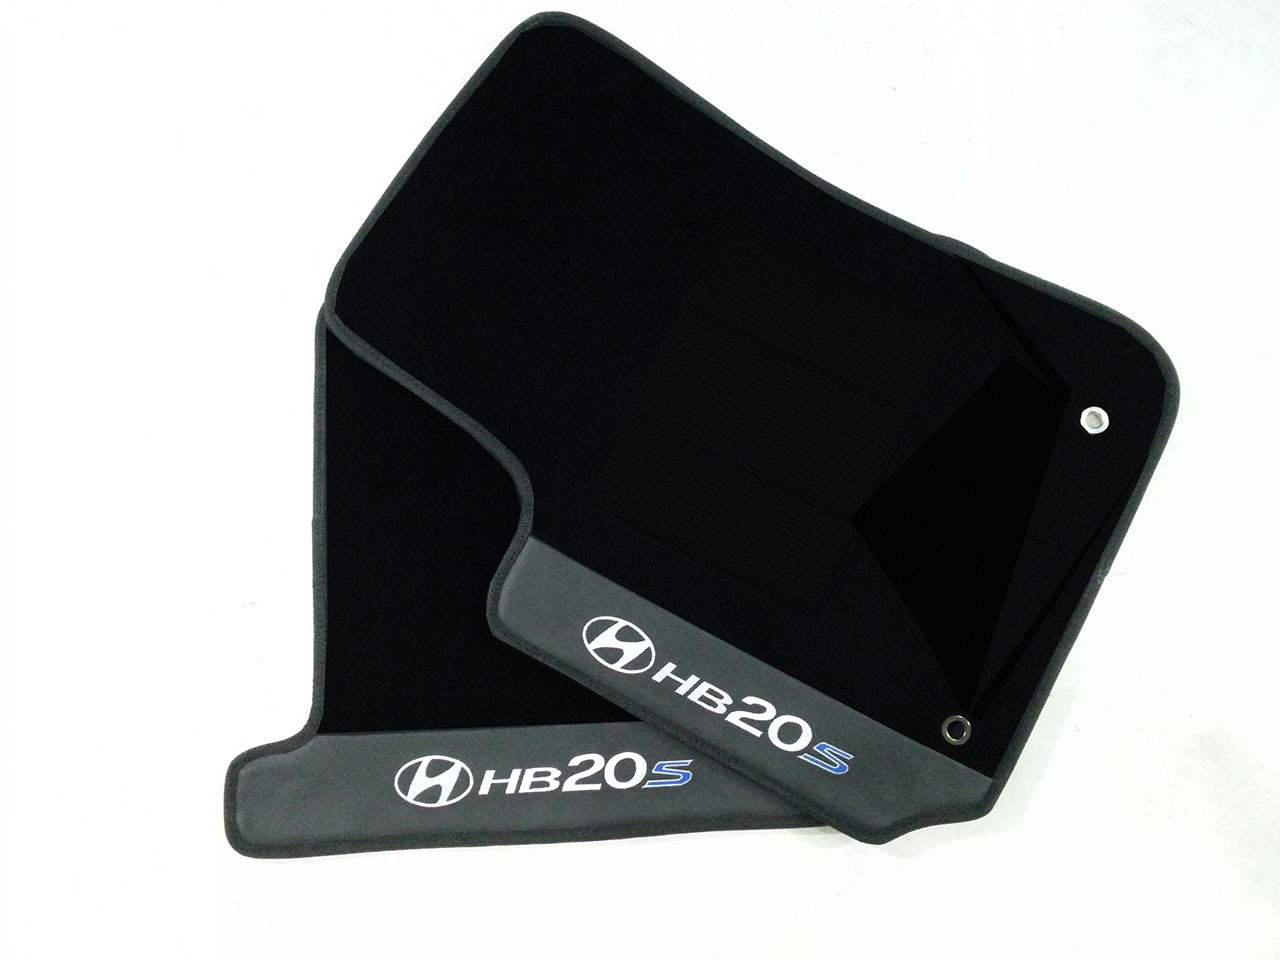 Tapete Hyundai Hb20s Borracha Pvc Com Base Pinada Hitto